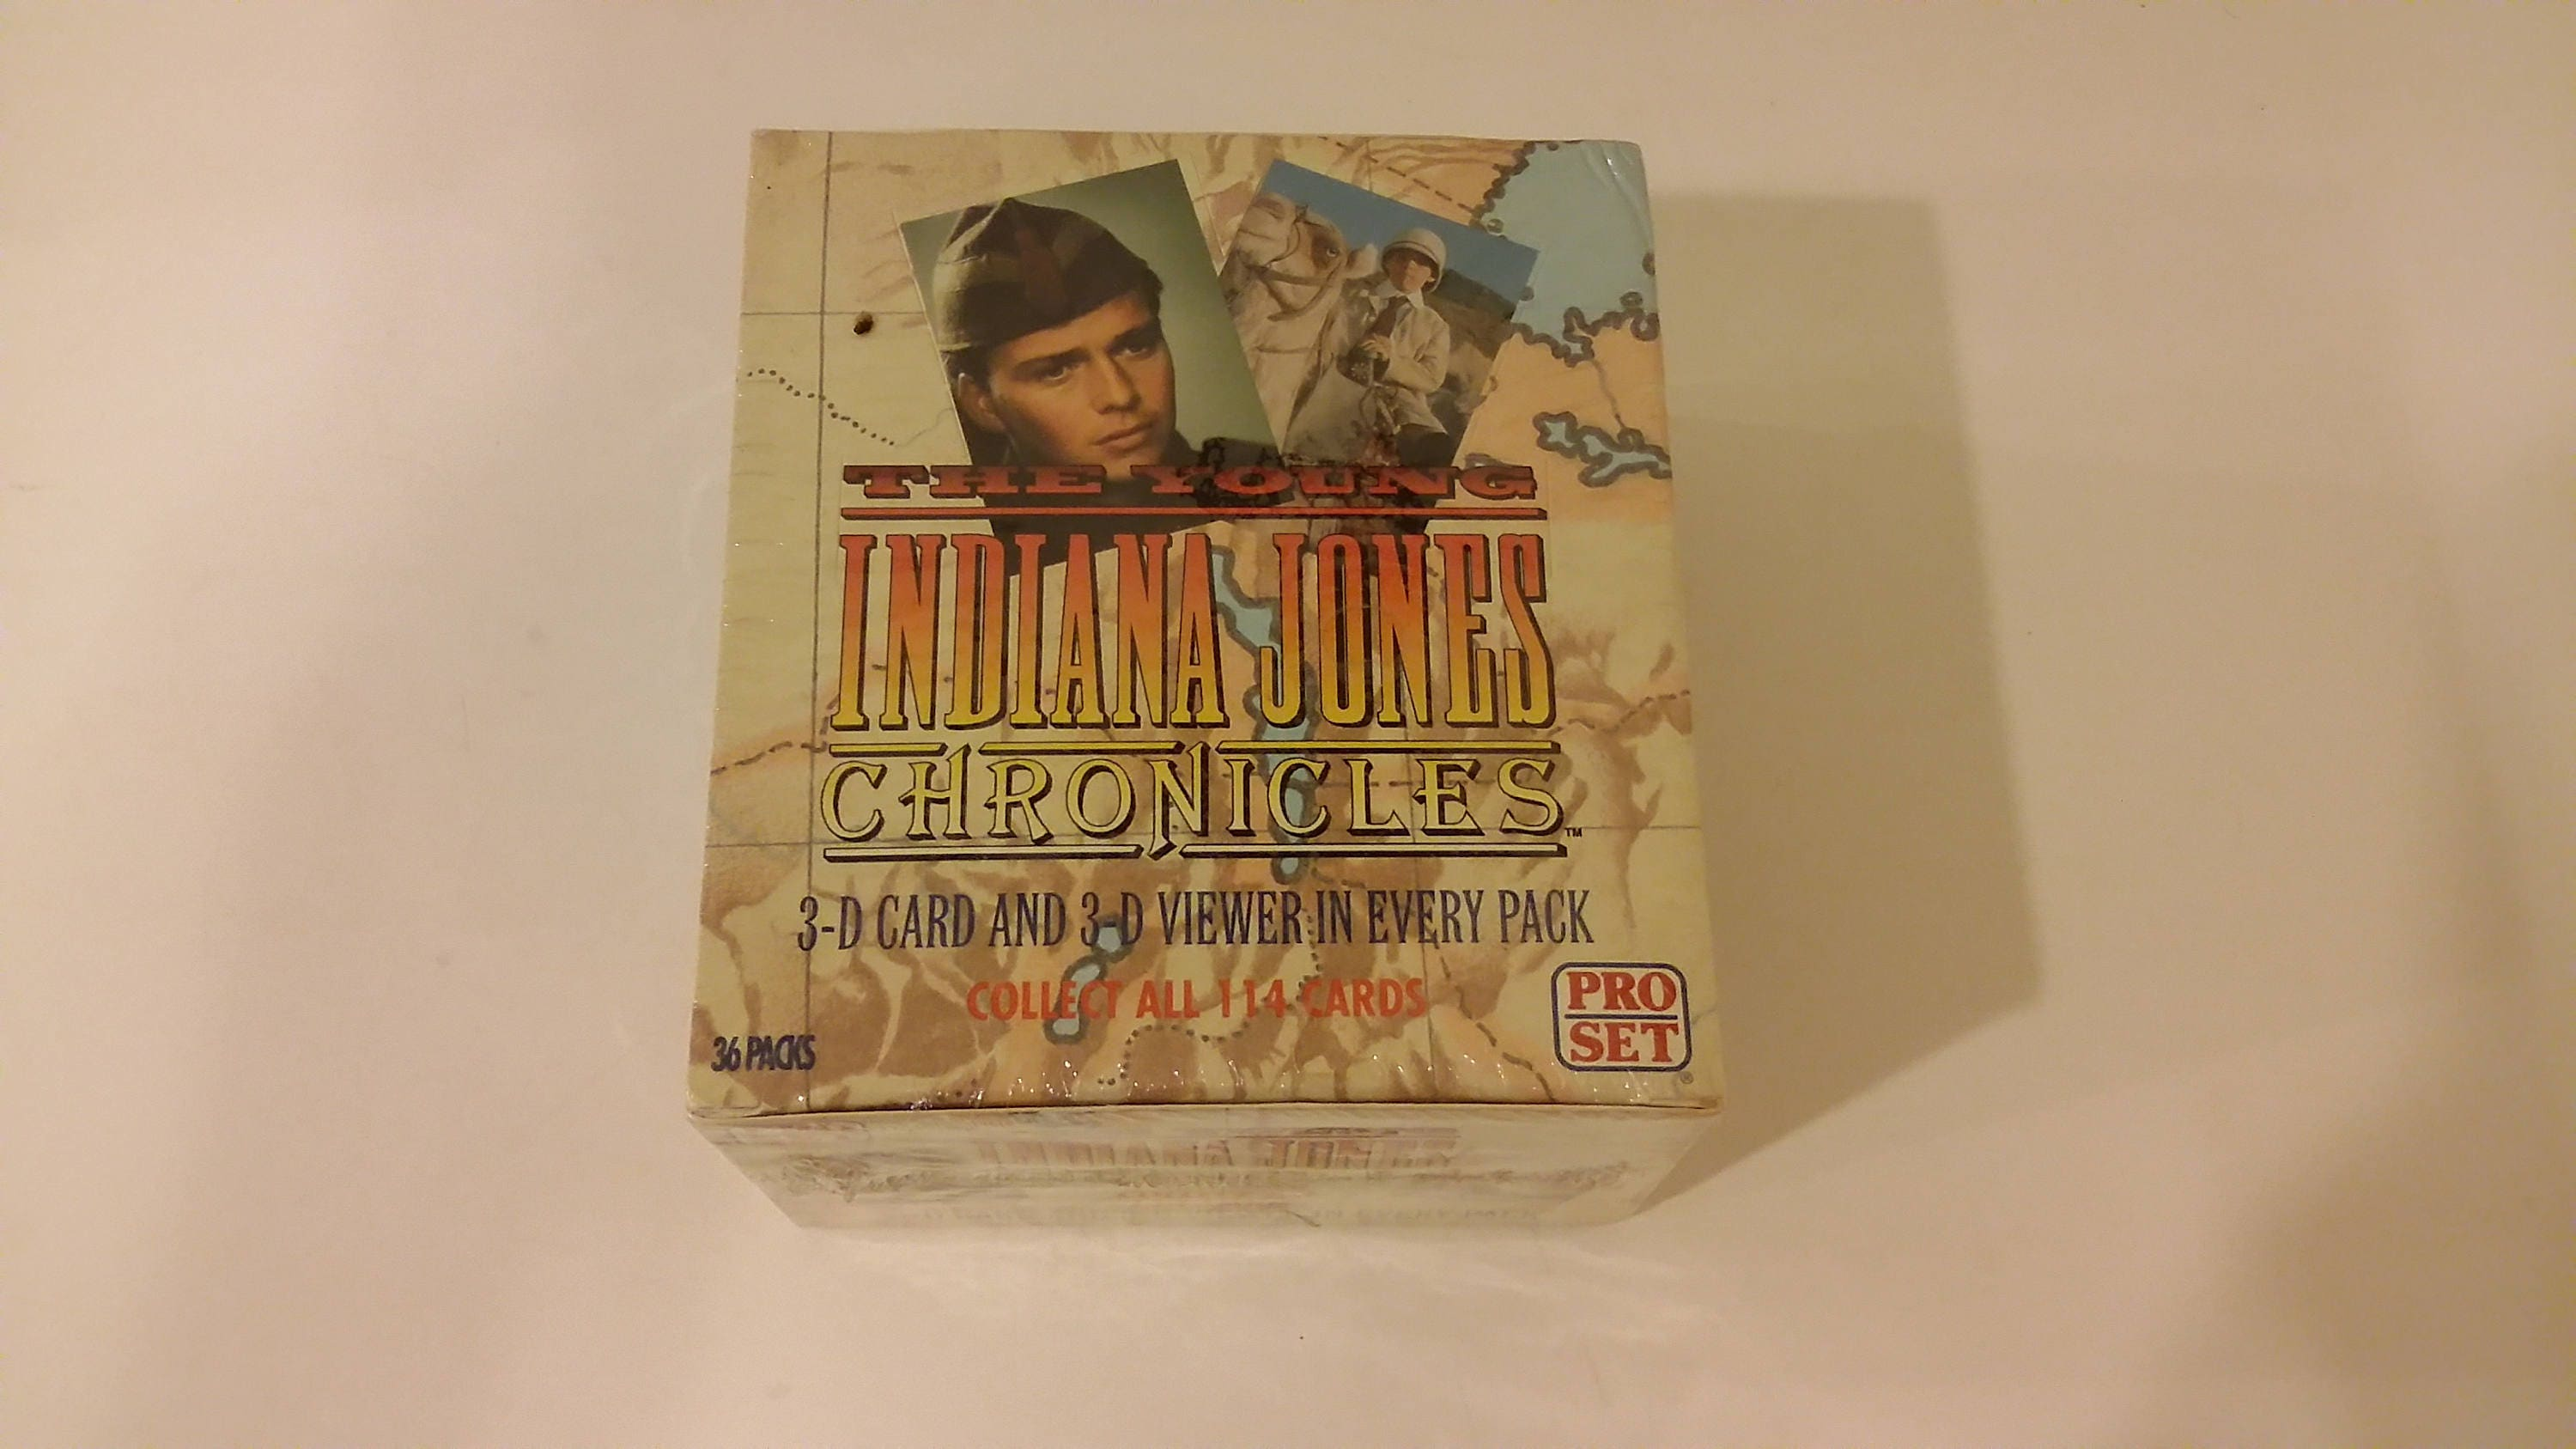 1992 PRO SET CARDS YOUNG INDIANA JONES CHRONICLES COMPLETE SET WITH 3D CARDS